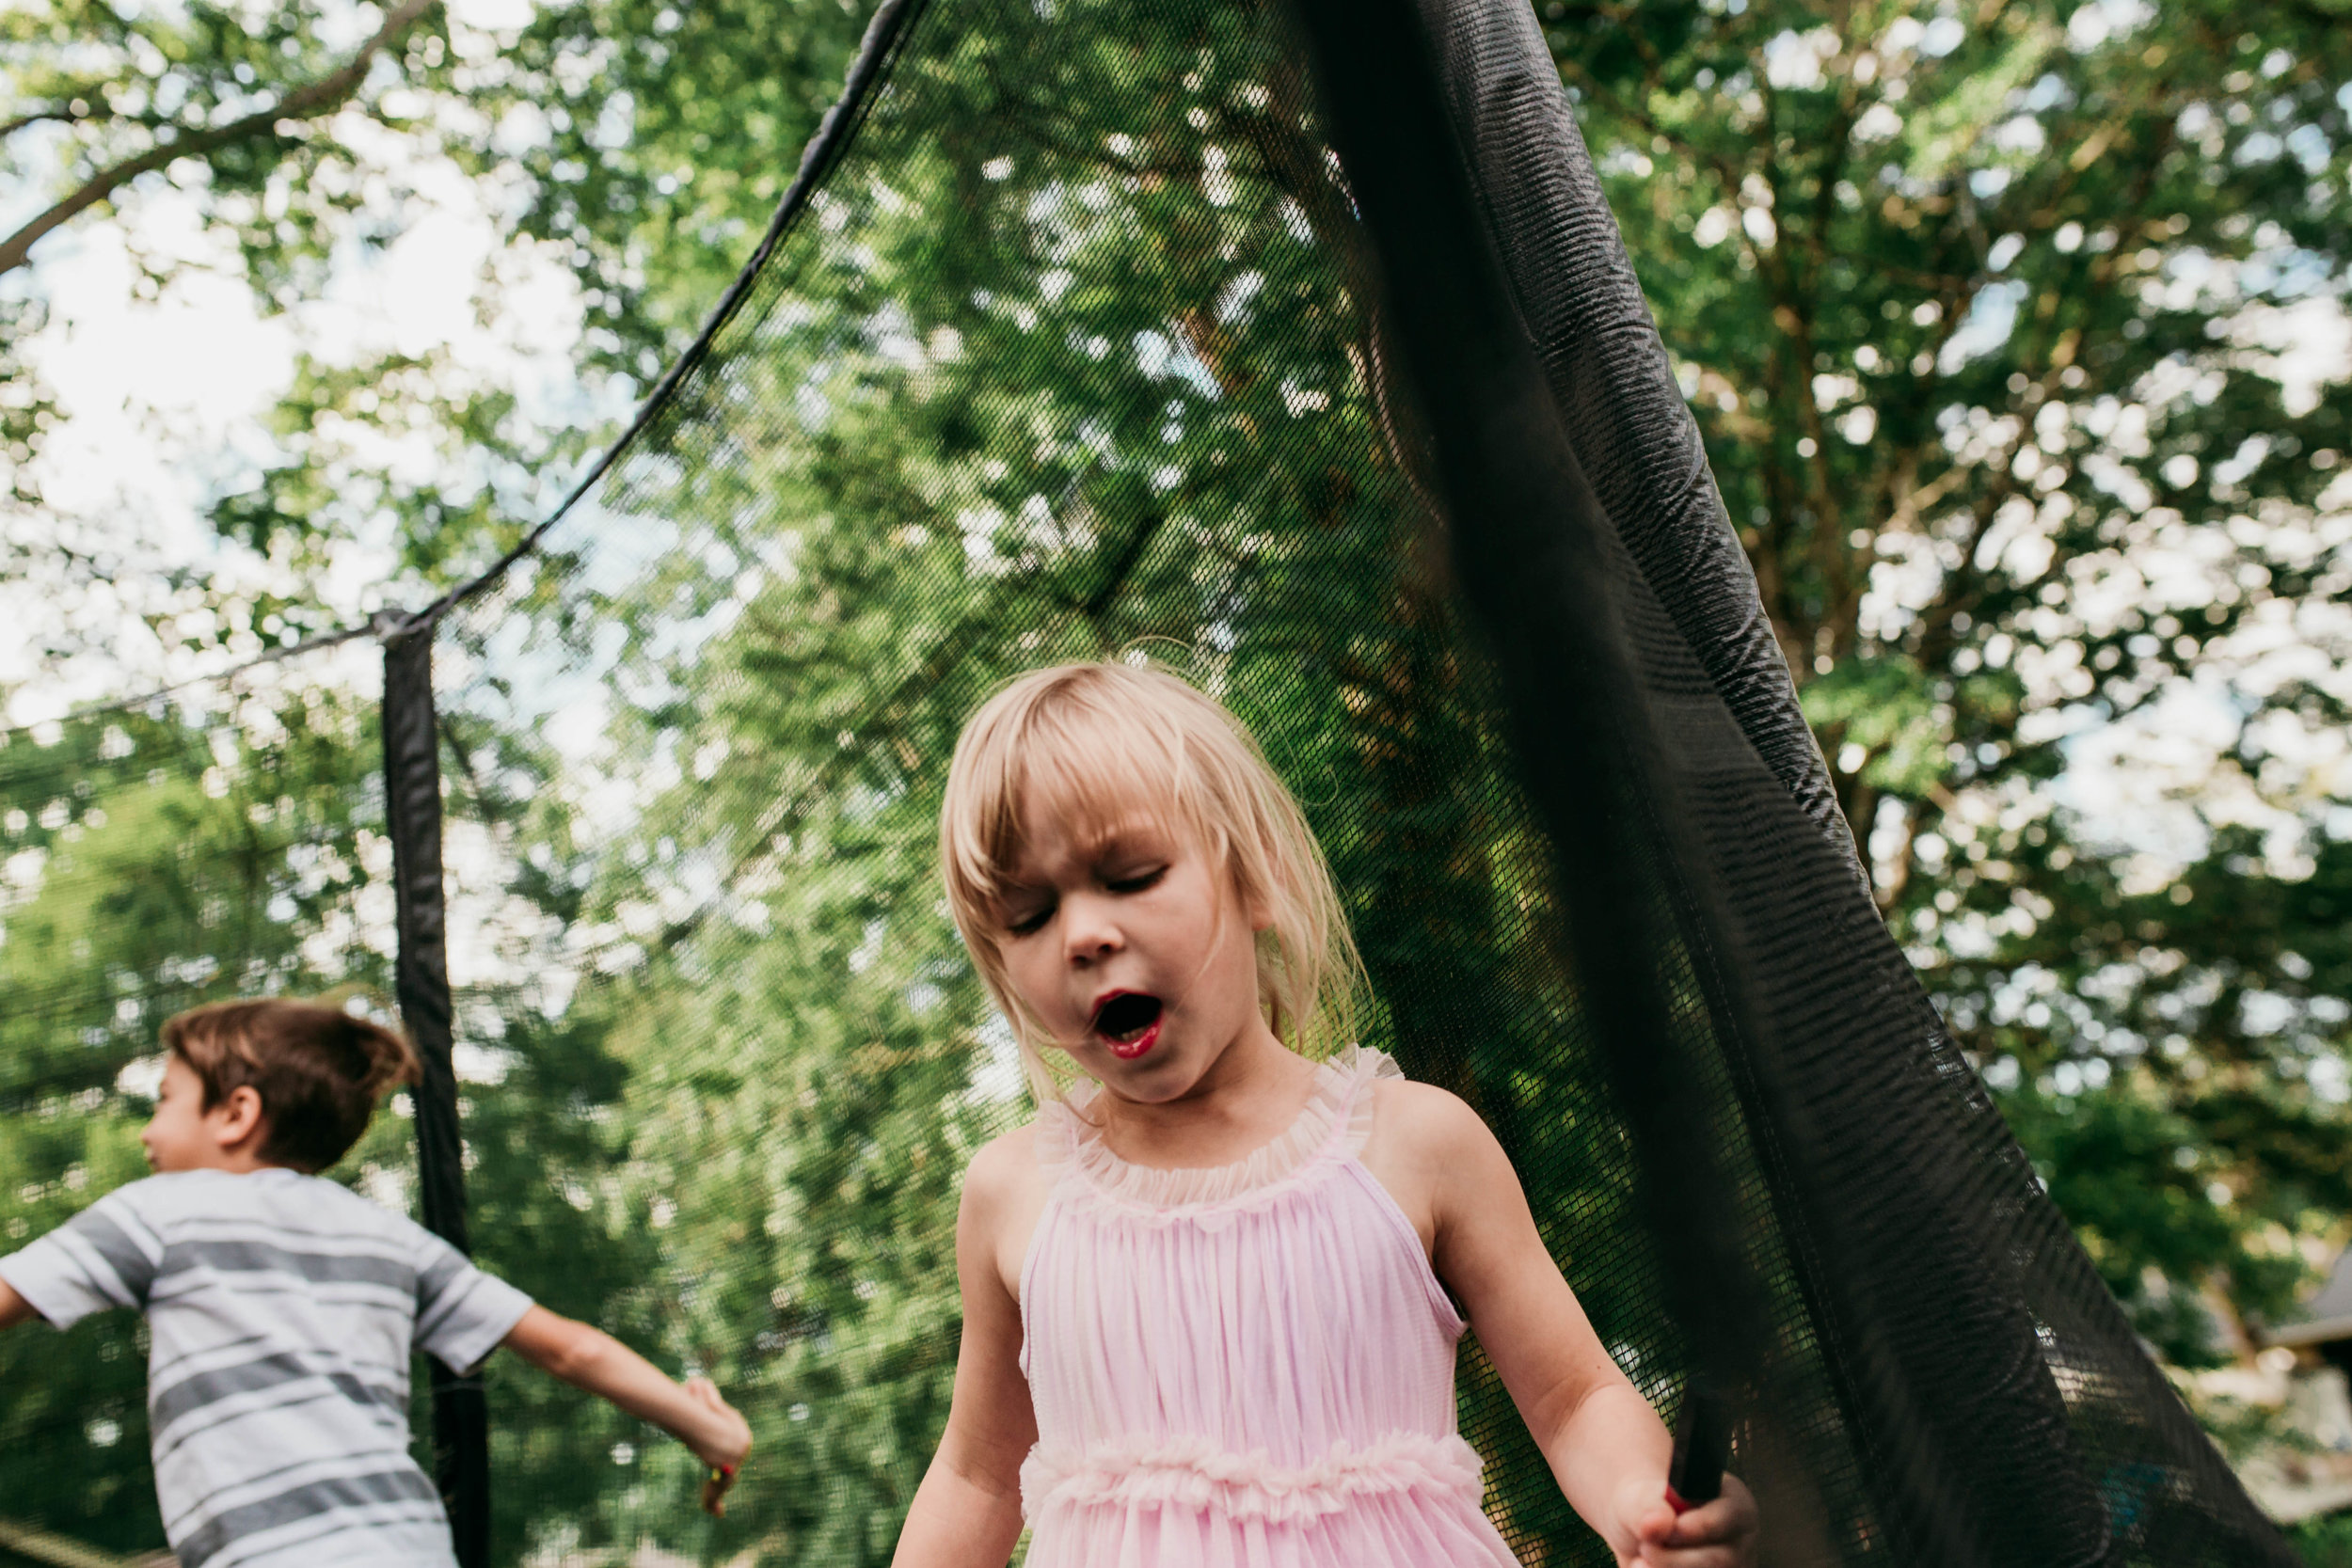 The little girl talks loudly as she walks around the trampoline.   The Carter Family : Summer in the Backyard | Hannahill Photography | Kansas City, MO | Family photography lifestyle photographer | Wedding photographer Durham North Carolina Raleigh | Birth photographer Documentary